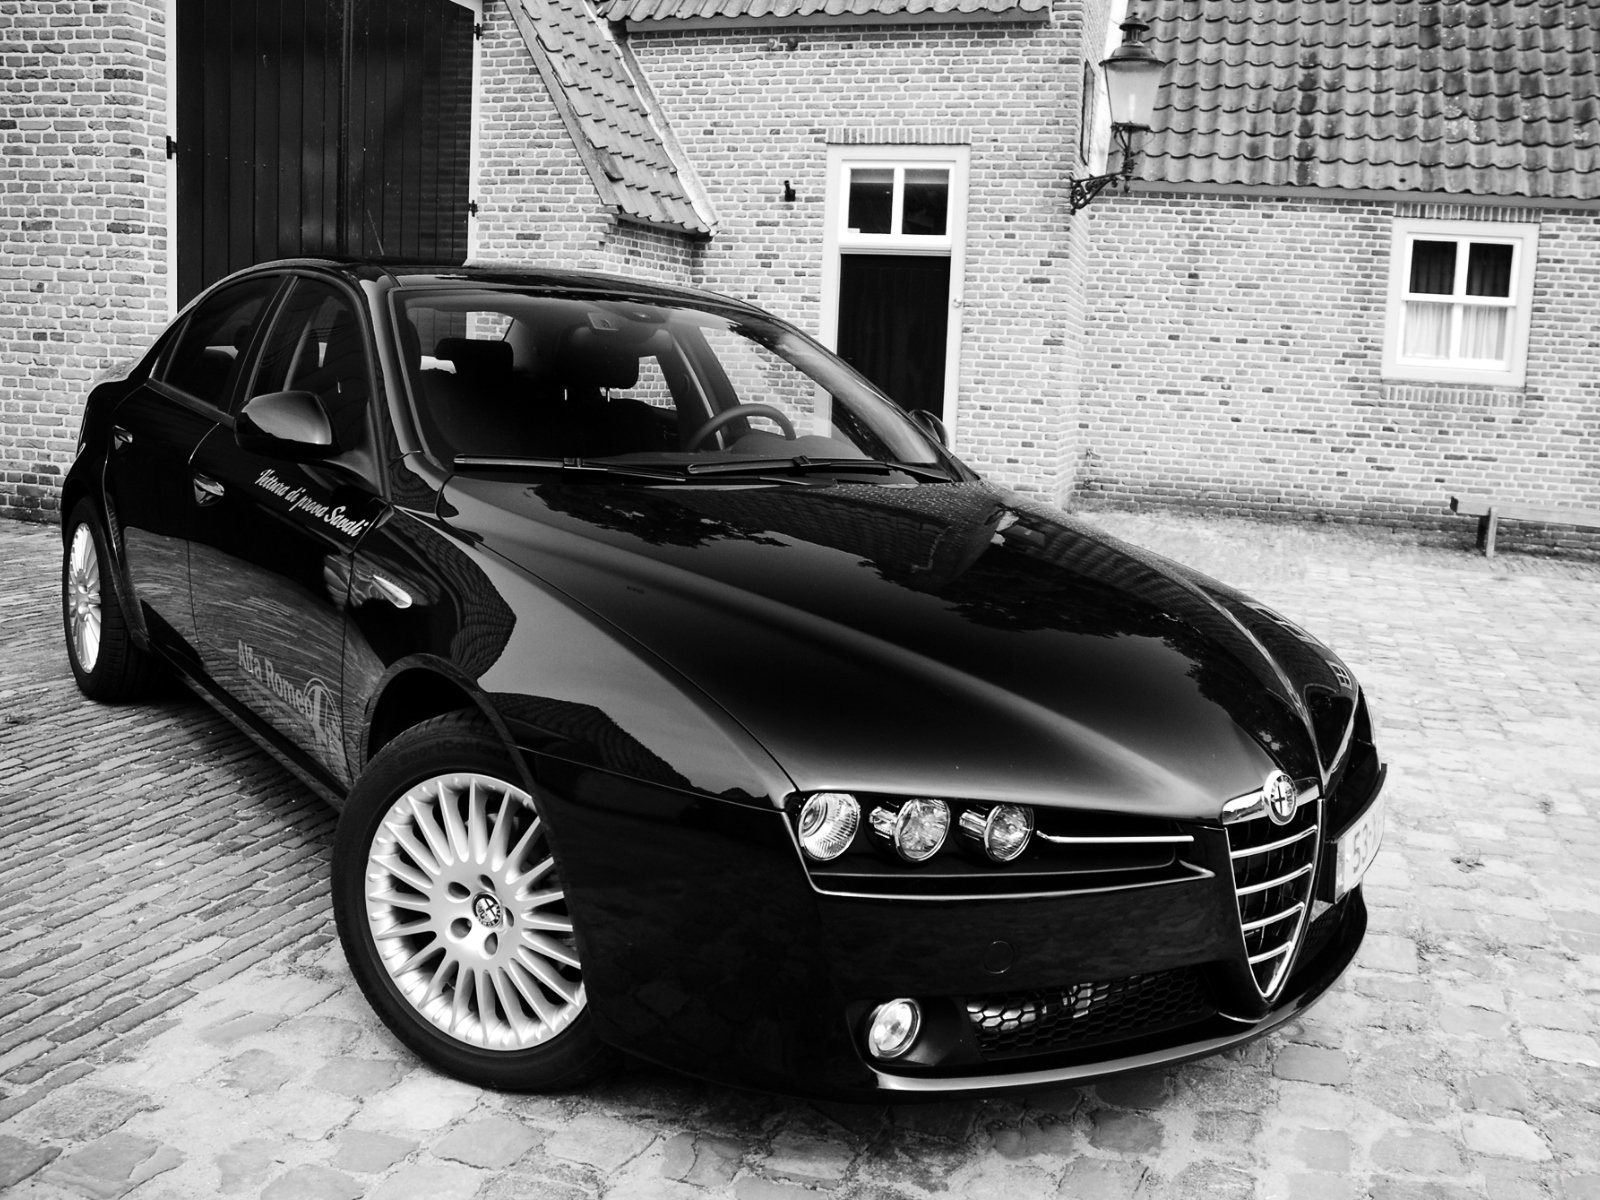 17 Alfa Romeo 159 Hd Wallpapers Background Images Wallpaper Abyss